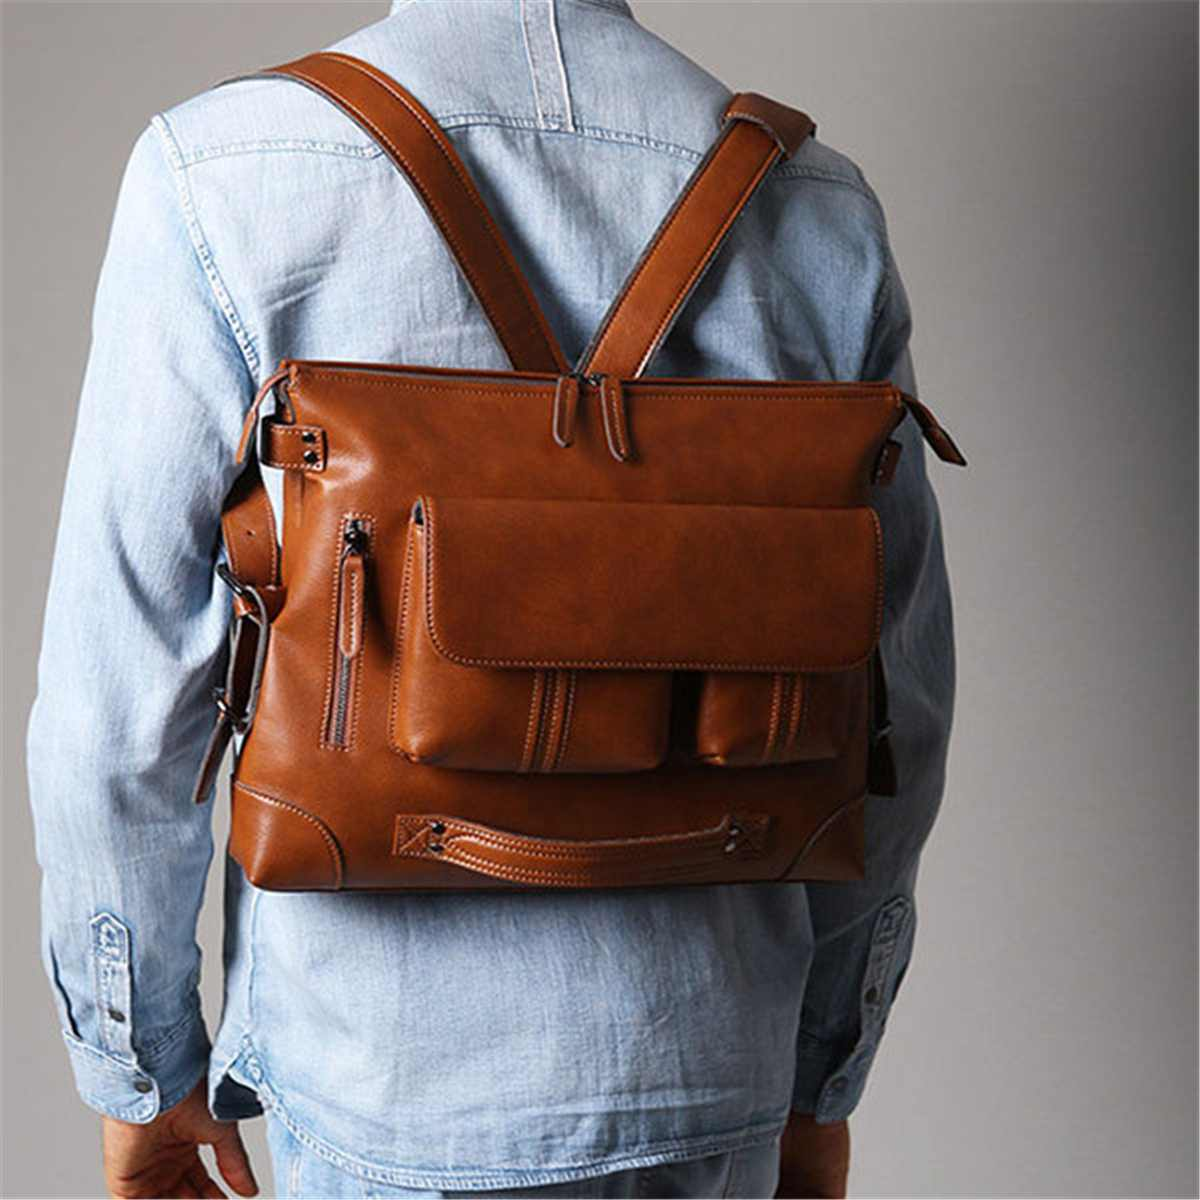 a guy carrying a leather shoulder bag